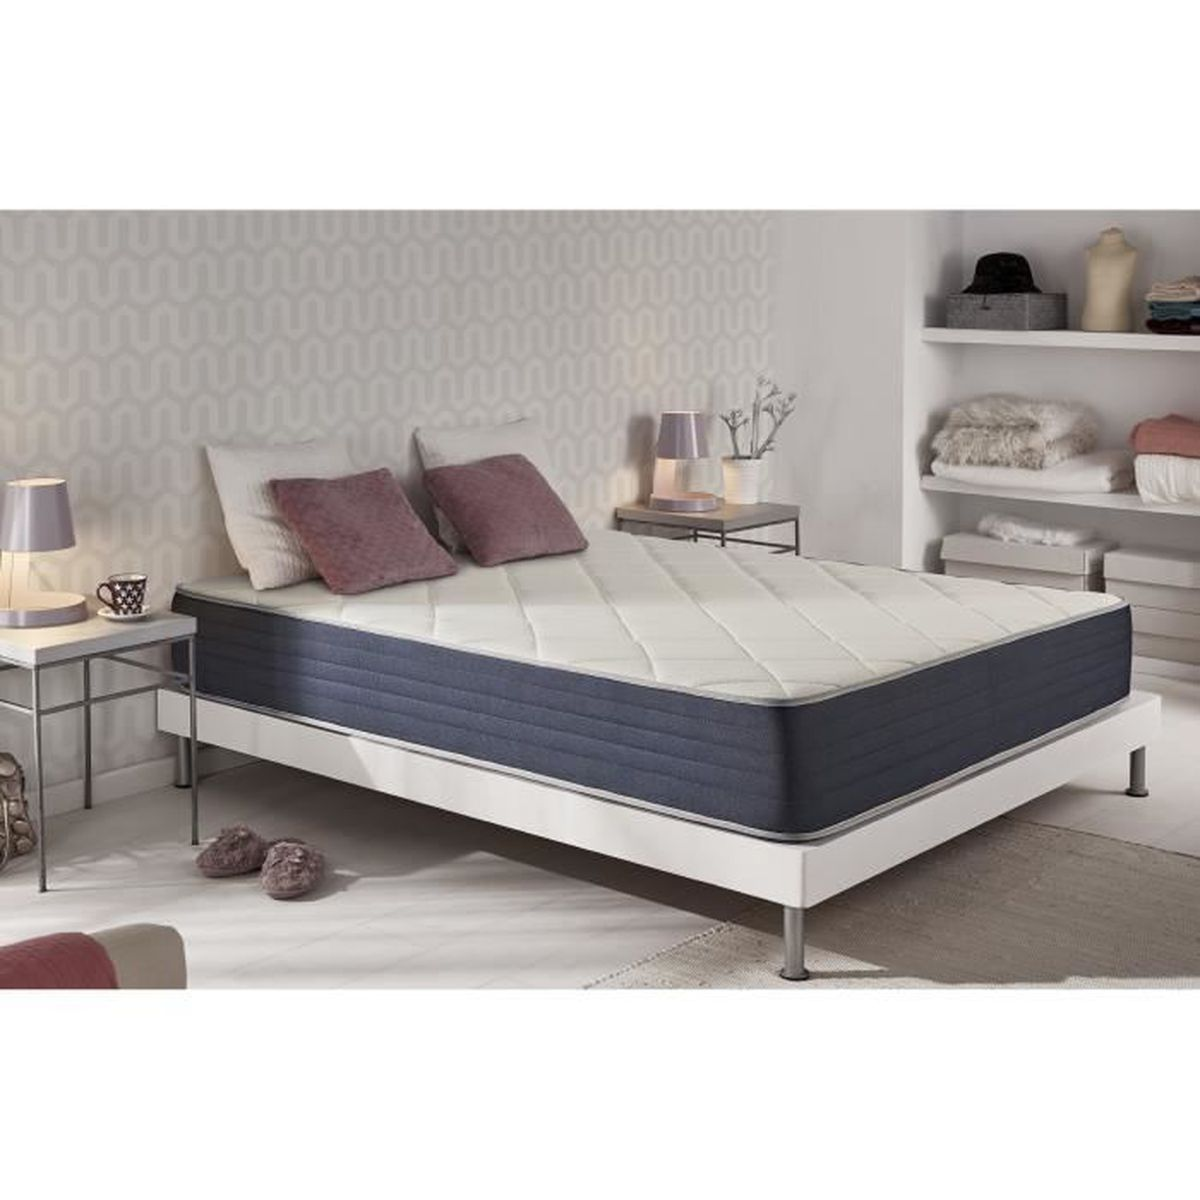 matelas 60x190 90x190 finest with 90x190 stunning havana bunk bed x matelas 60 x 190 achat. Black Bedroom Furniture Sets. Home Design Ideas